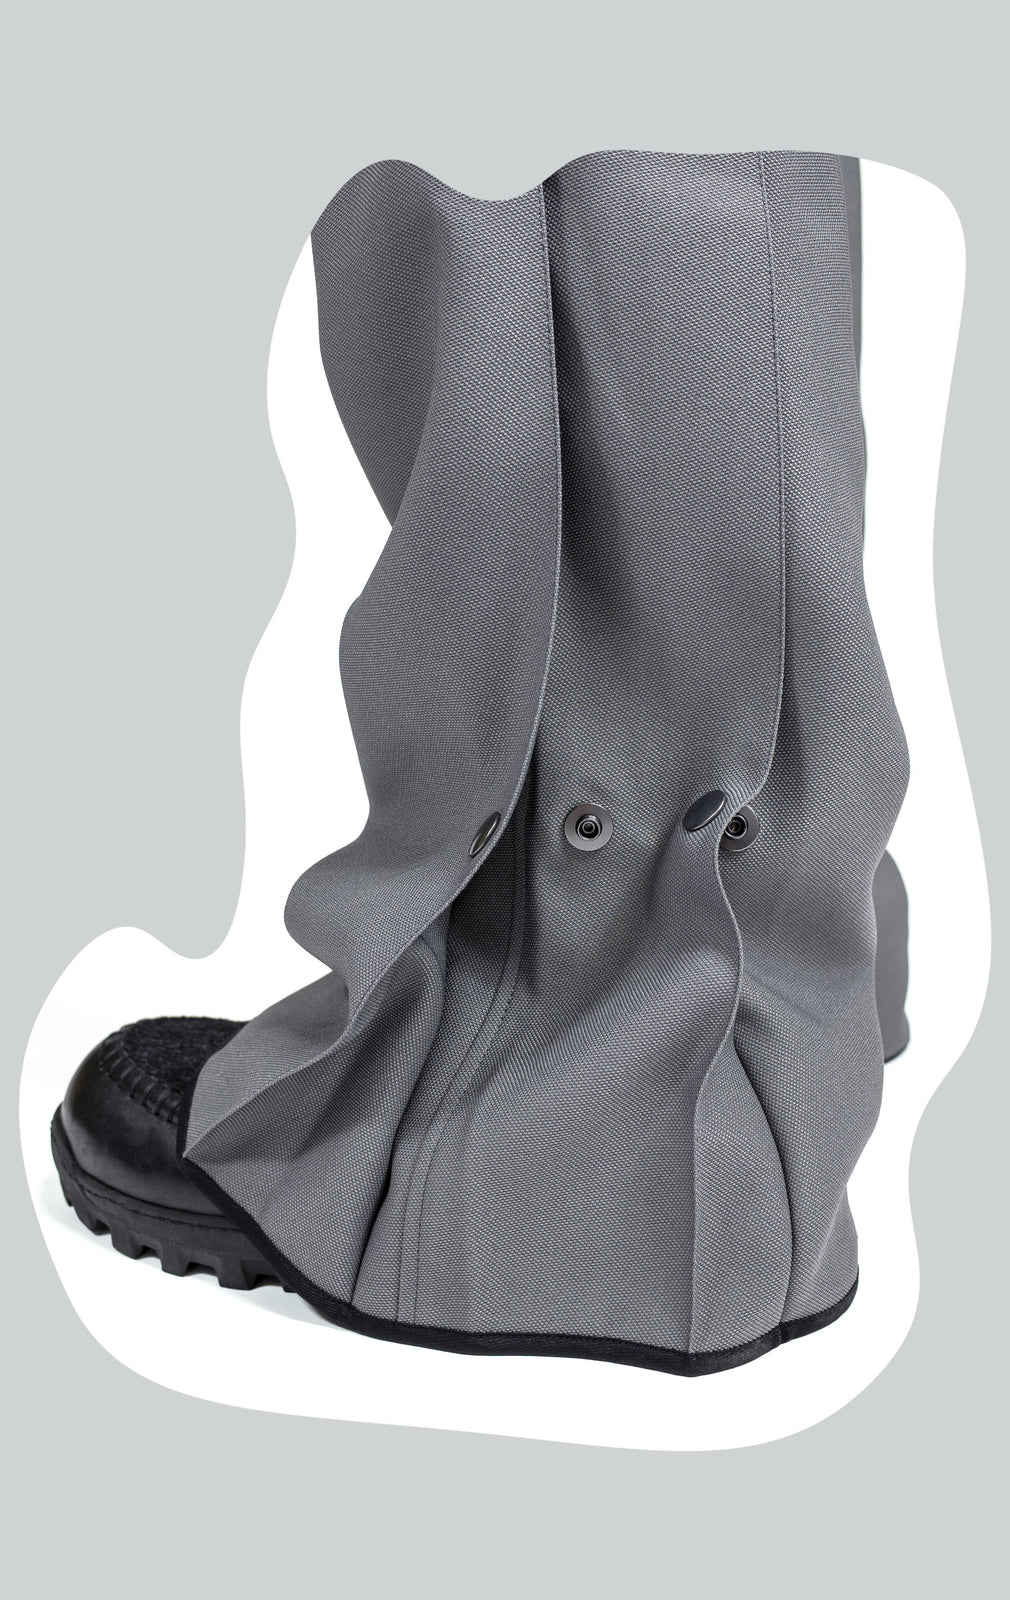 KIKO KOSTADINOV 00092020 REVERSIBLE PLEAT OVERALLS GREY